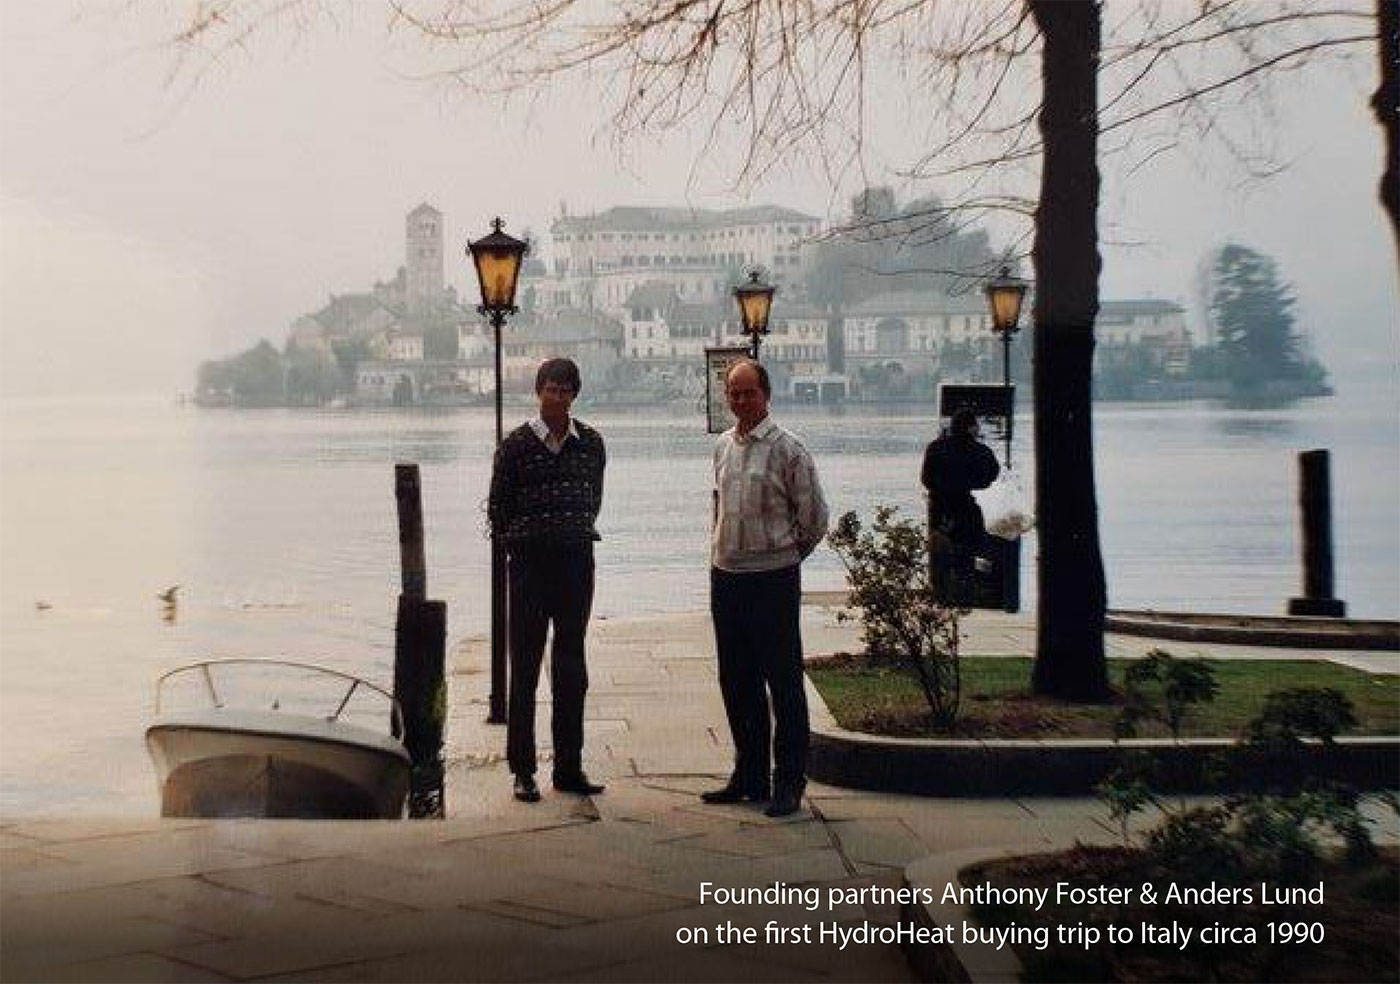 Founding partners Anthony Foster & Anders Lund on the first HydroHeat buying trip to Italy circa 1990